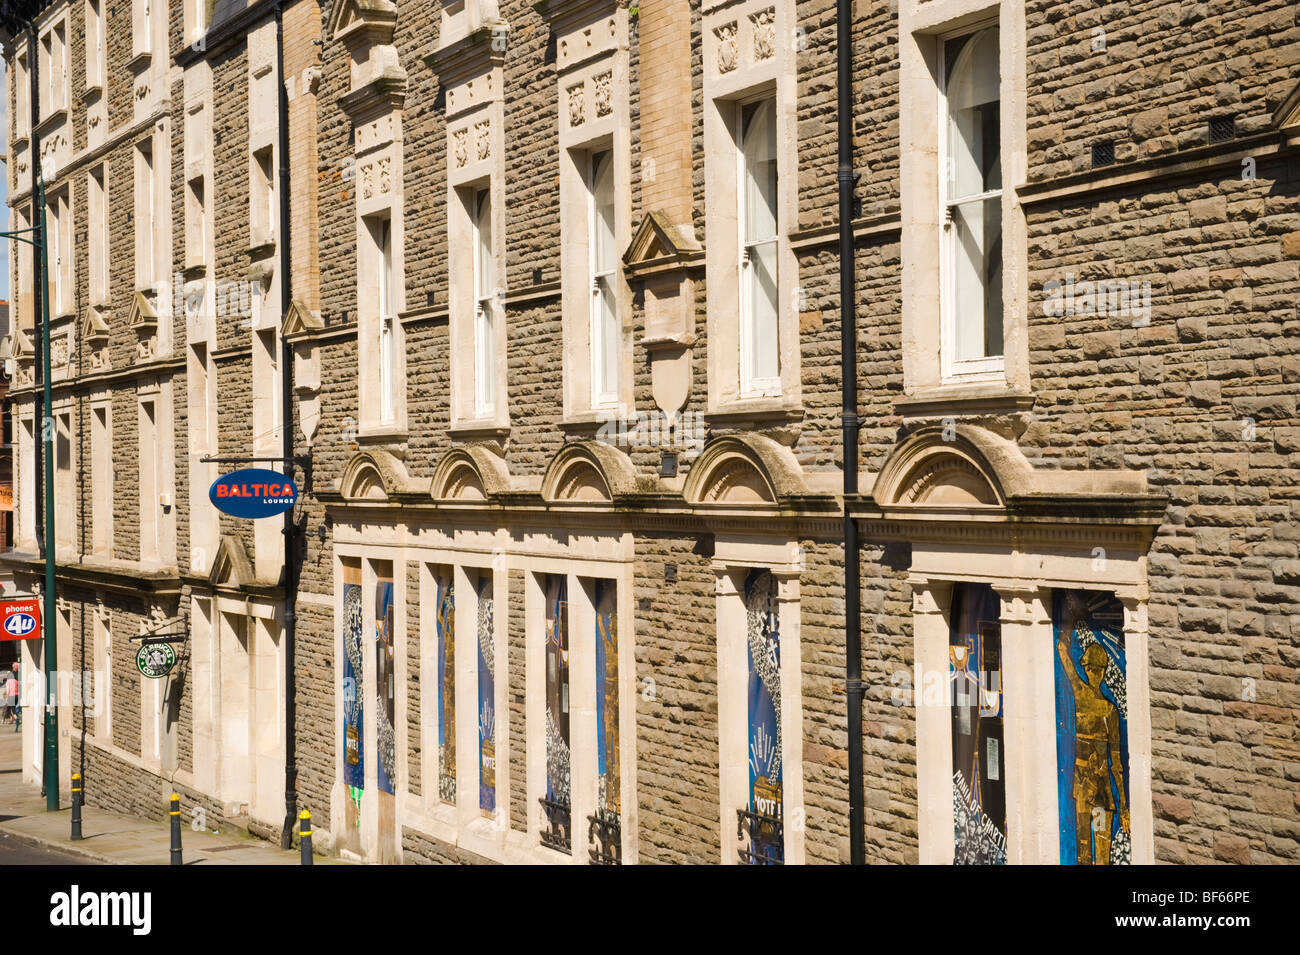 Side elevation of the historic Westgate Hotel in city of Newport South Wales UK - Stock Image